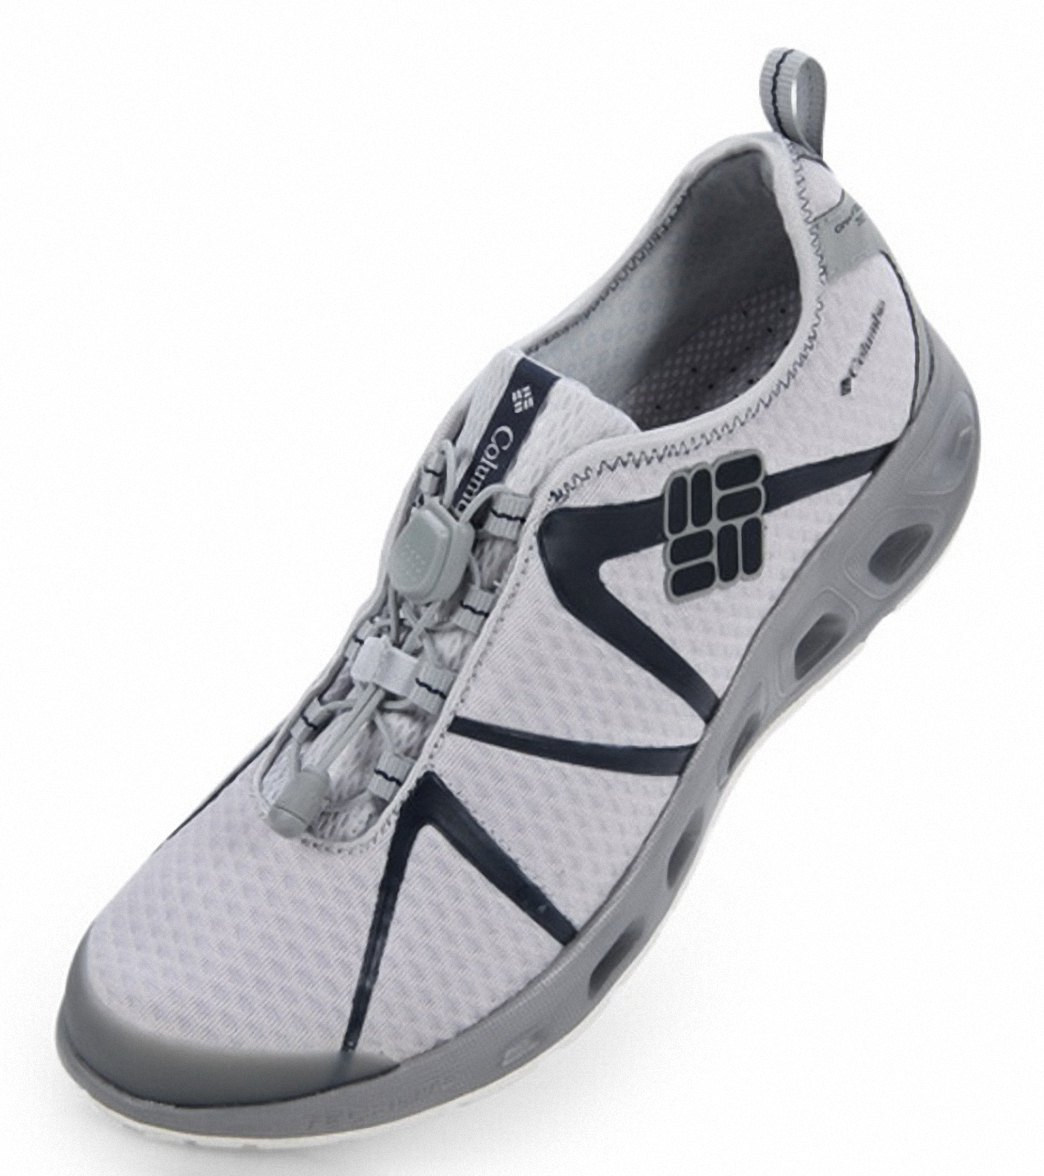 46fb66b004bb Columbia Men s Powerdrain Cool PFG Water Shoes at SwimOutlet ...